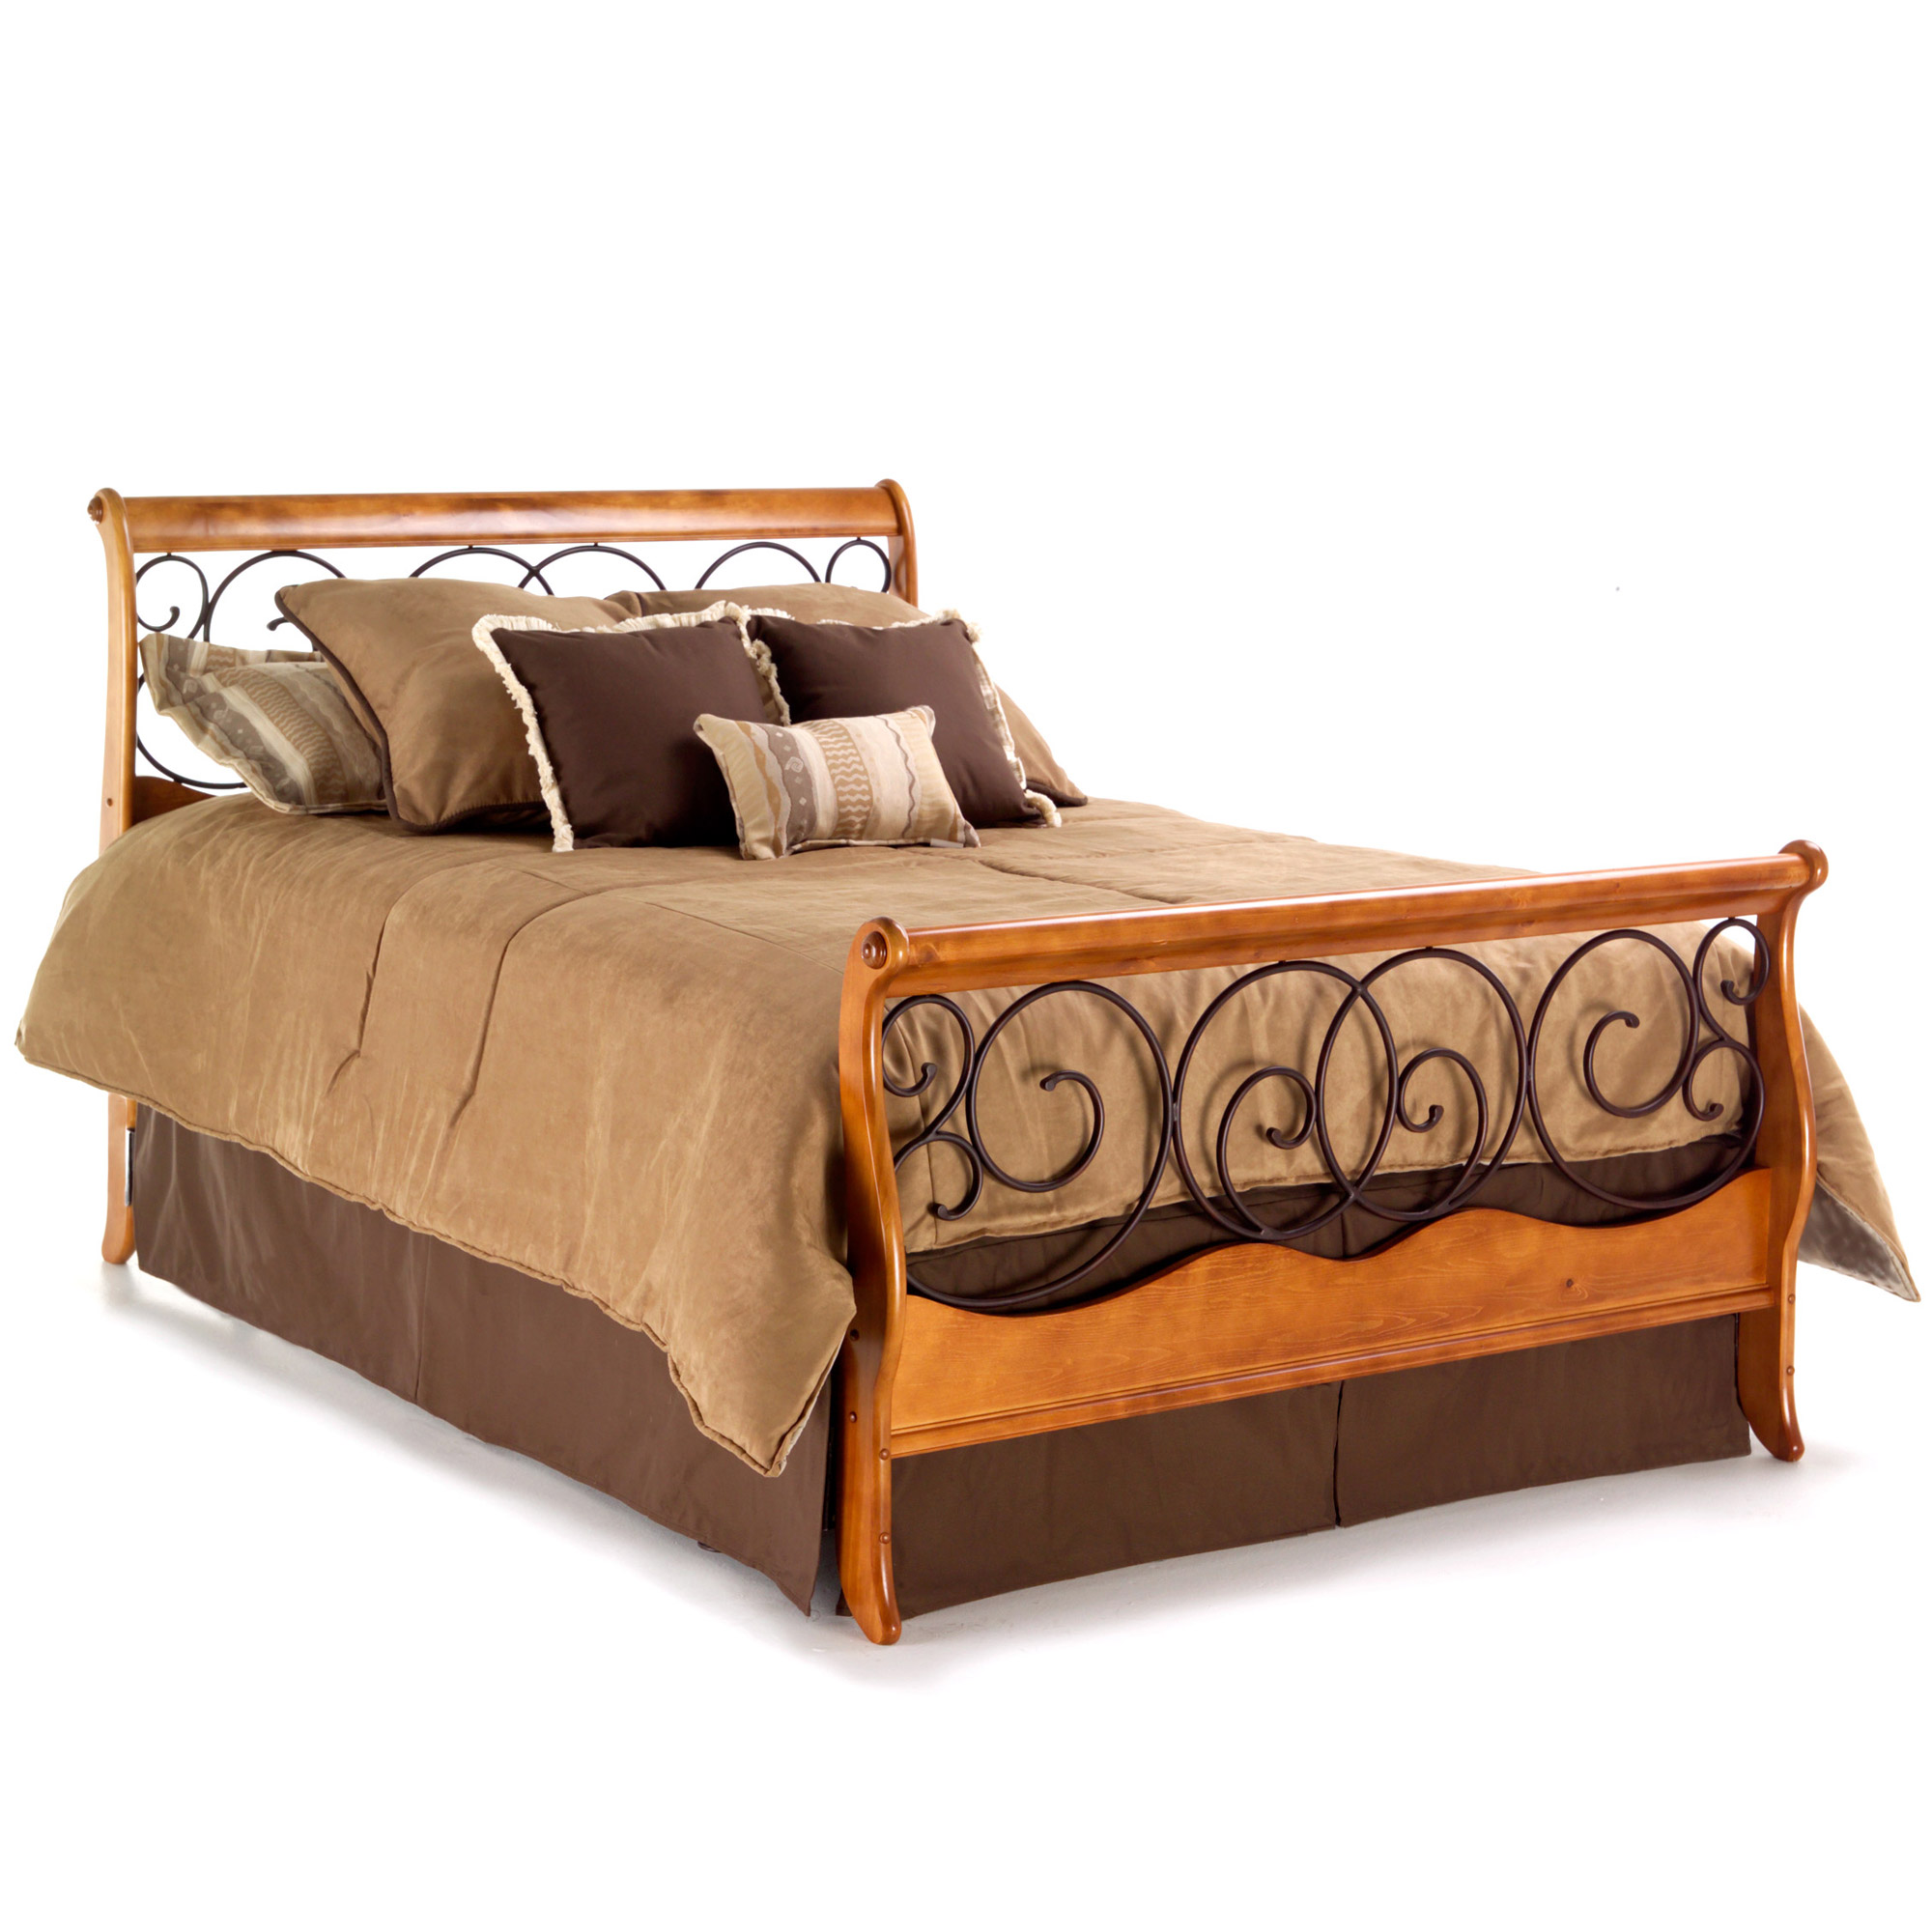 Bed furniture with price - Price